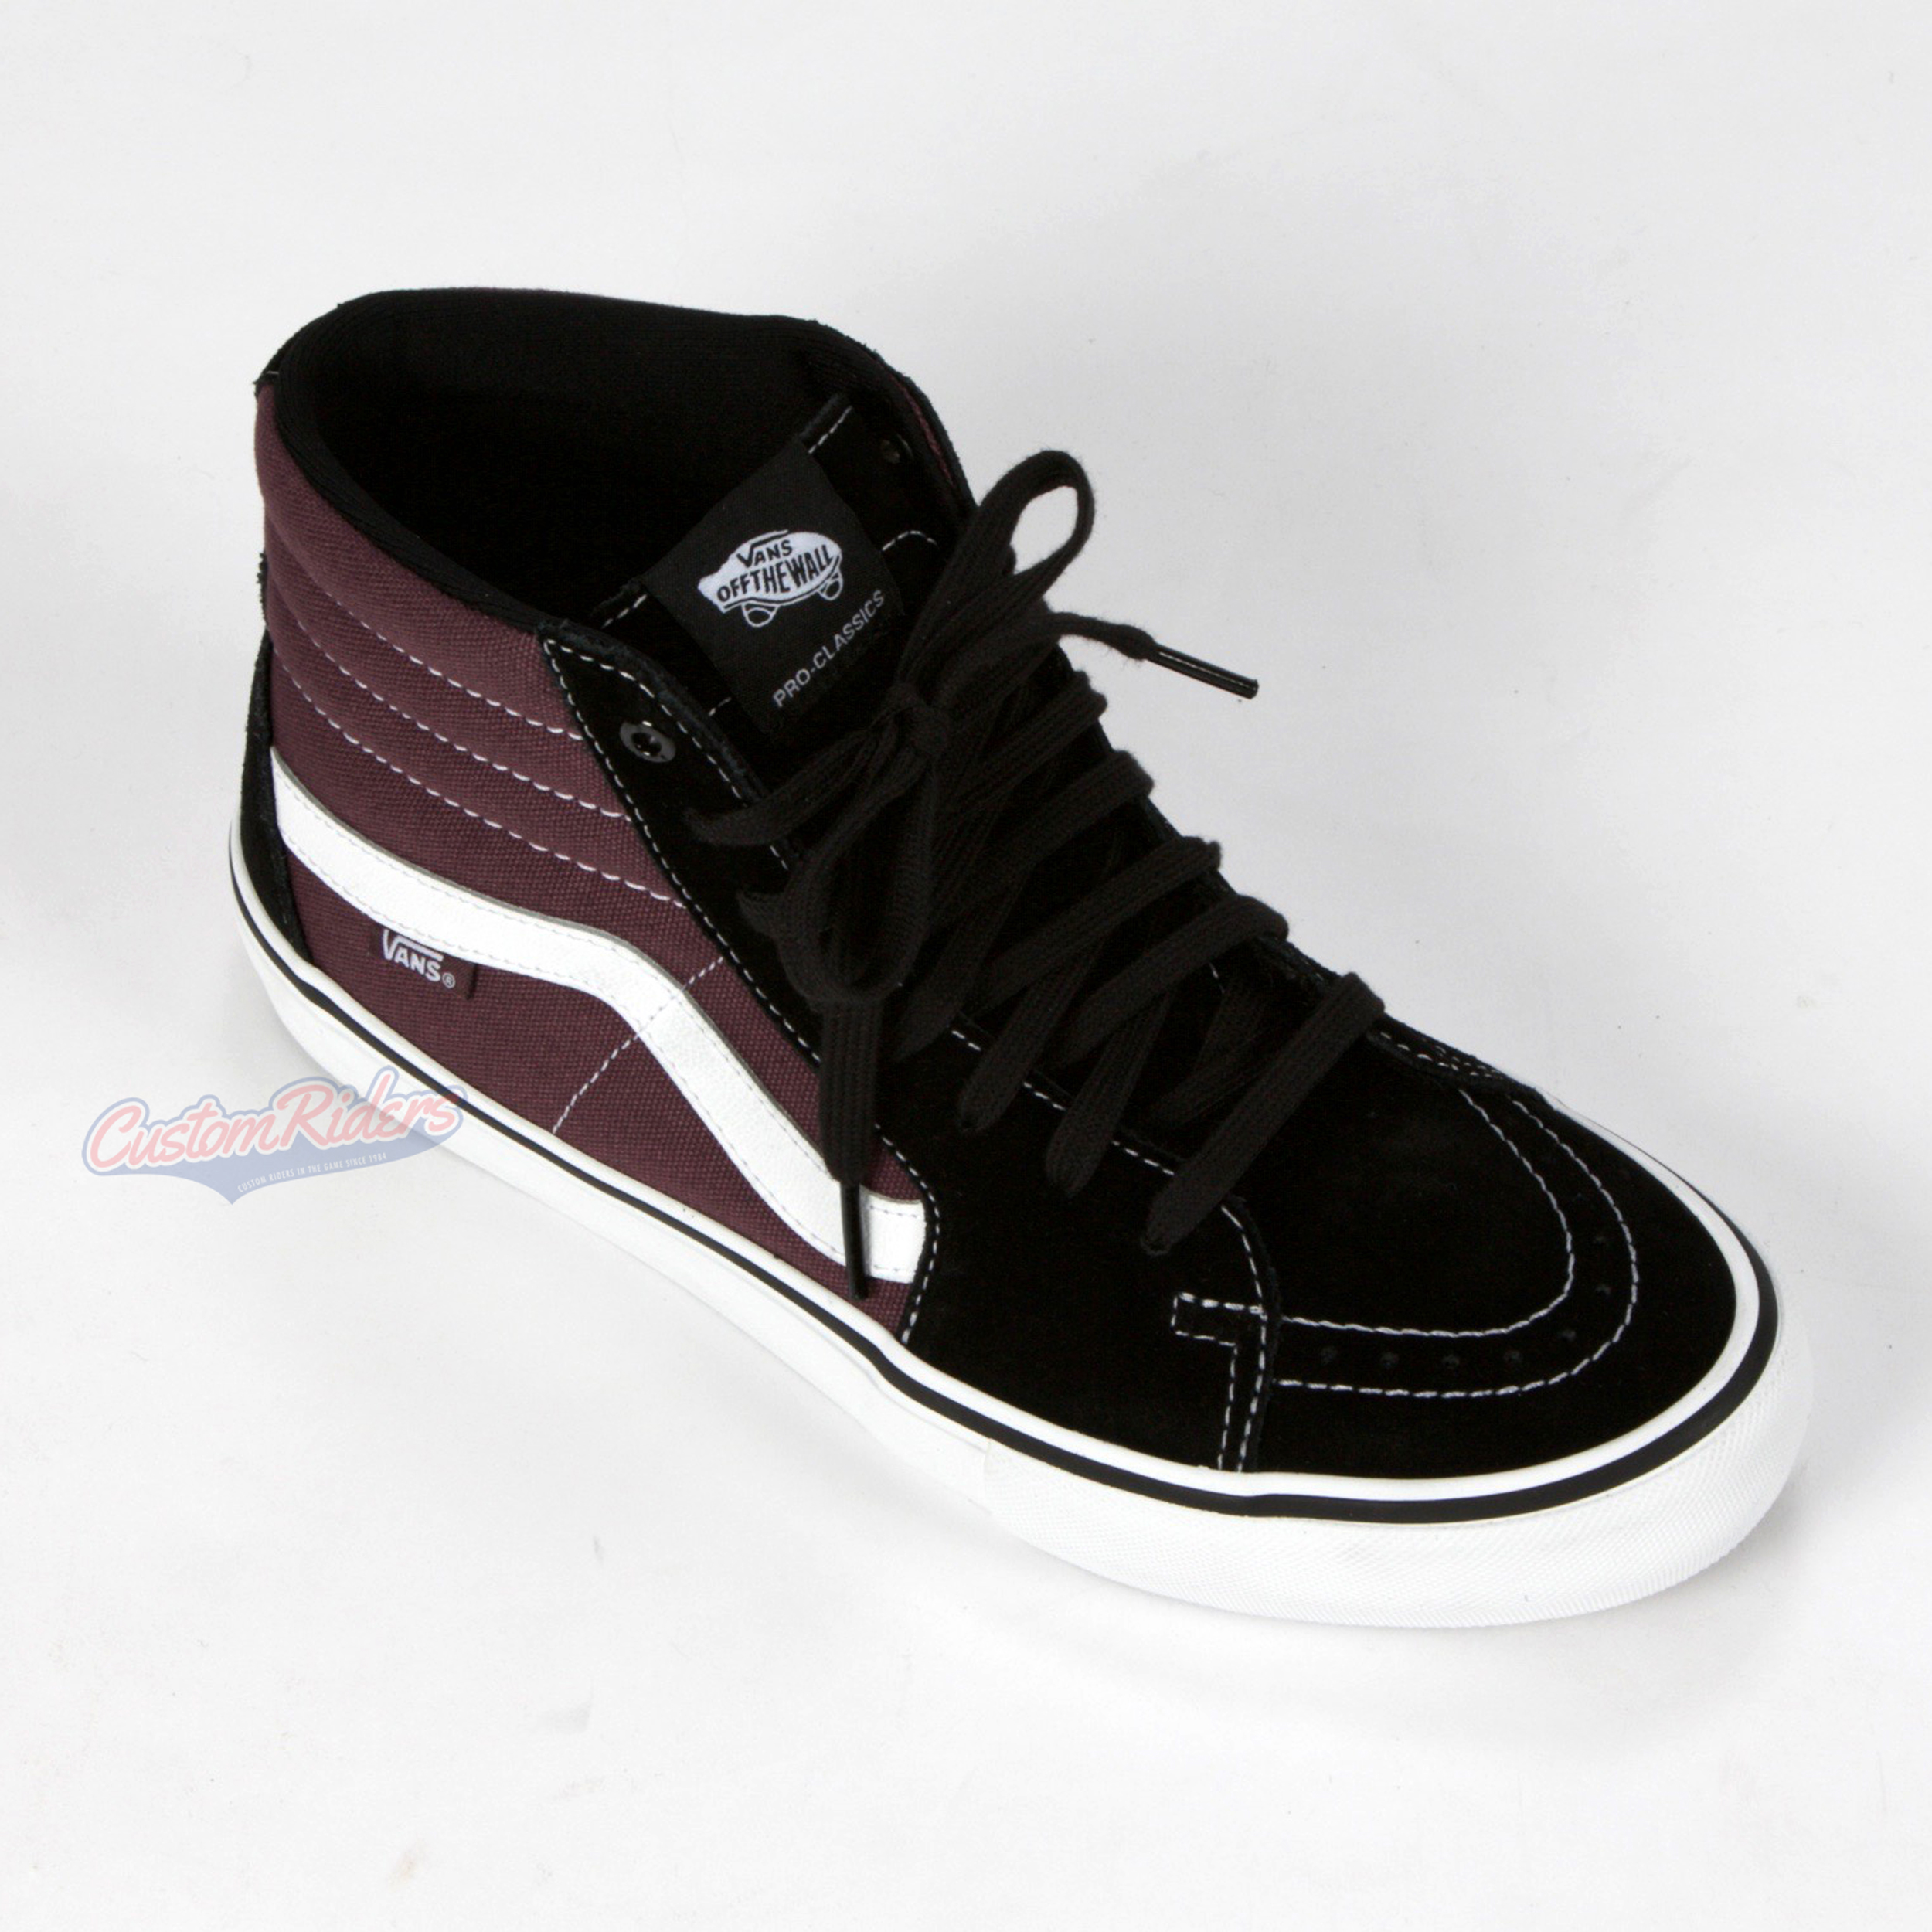 944b3149b314d7 Vans SK8-Hi Pro Shoes Black   Raisin £48.99